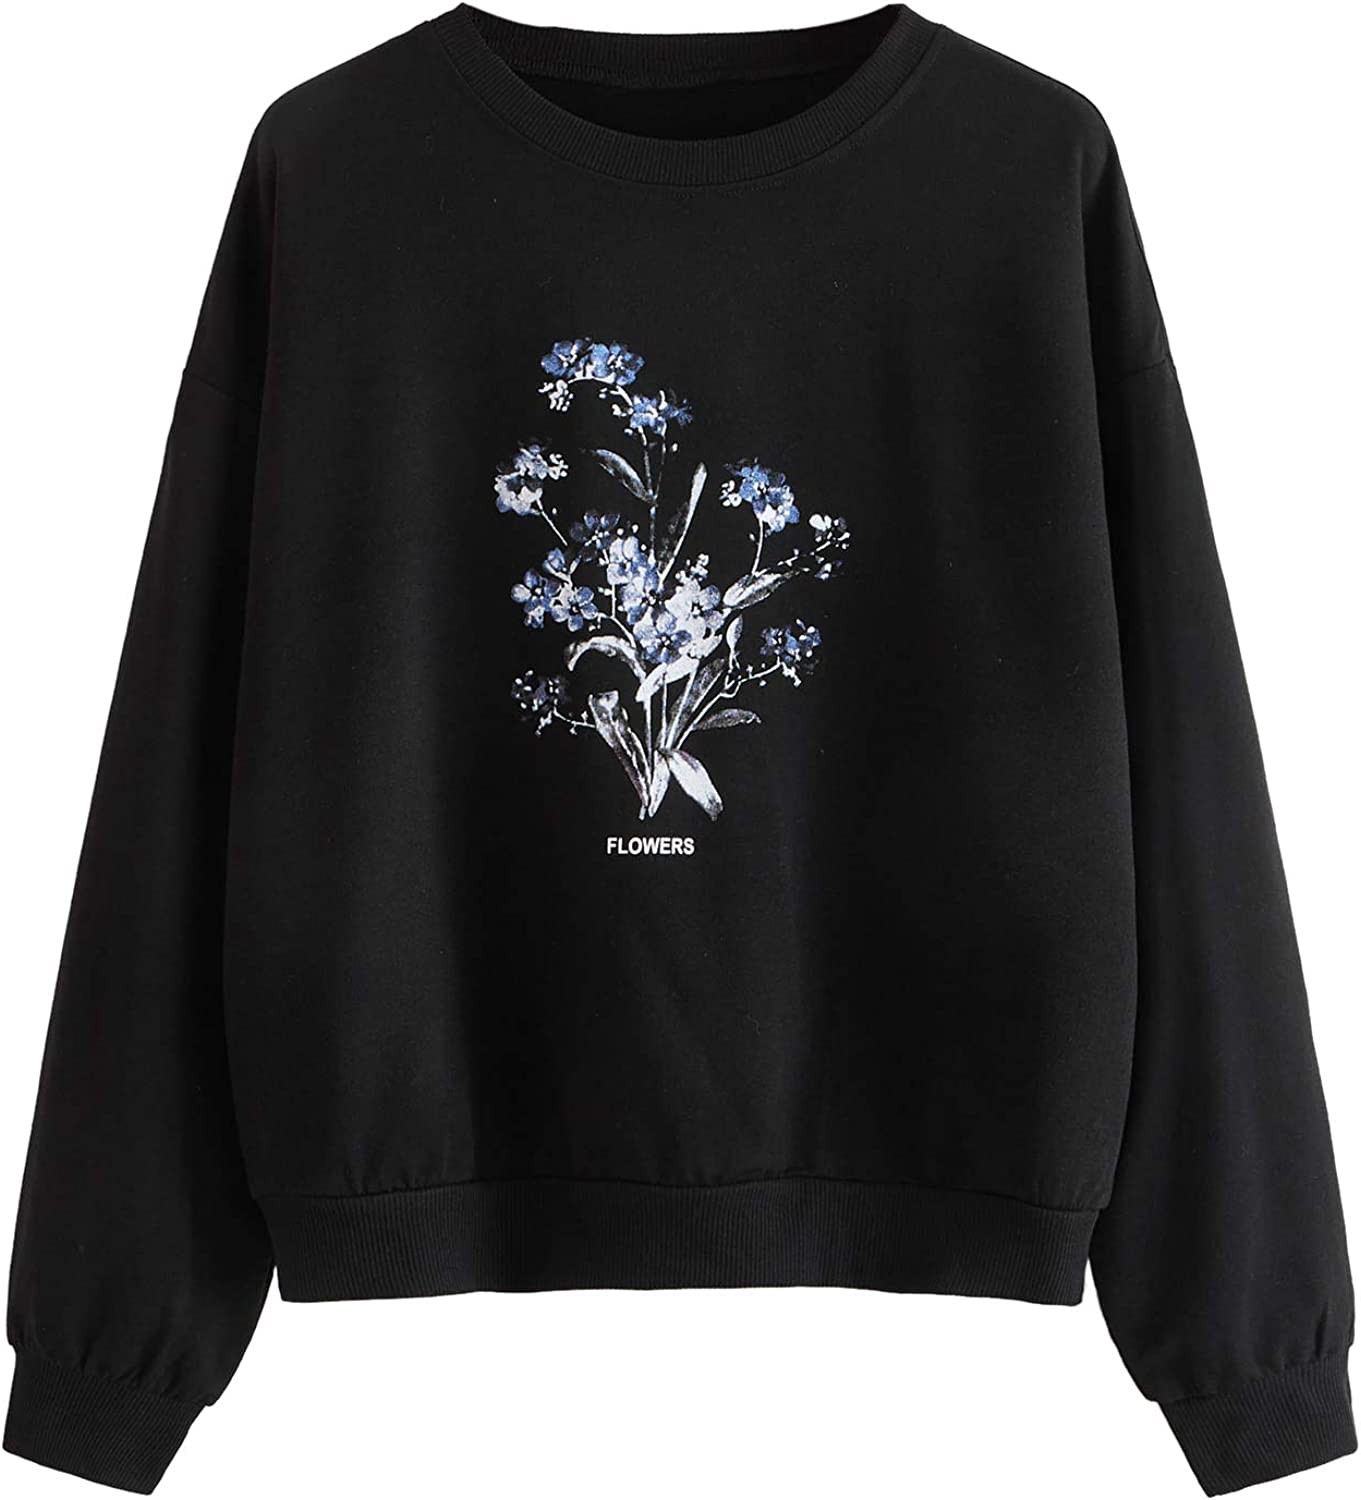 SOLY HUX Womens Casual Cow Print Mock Neck Long Sleeve T Shirt Top